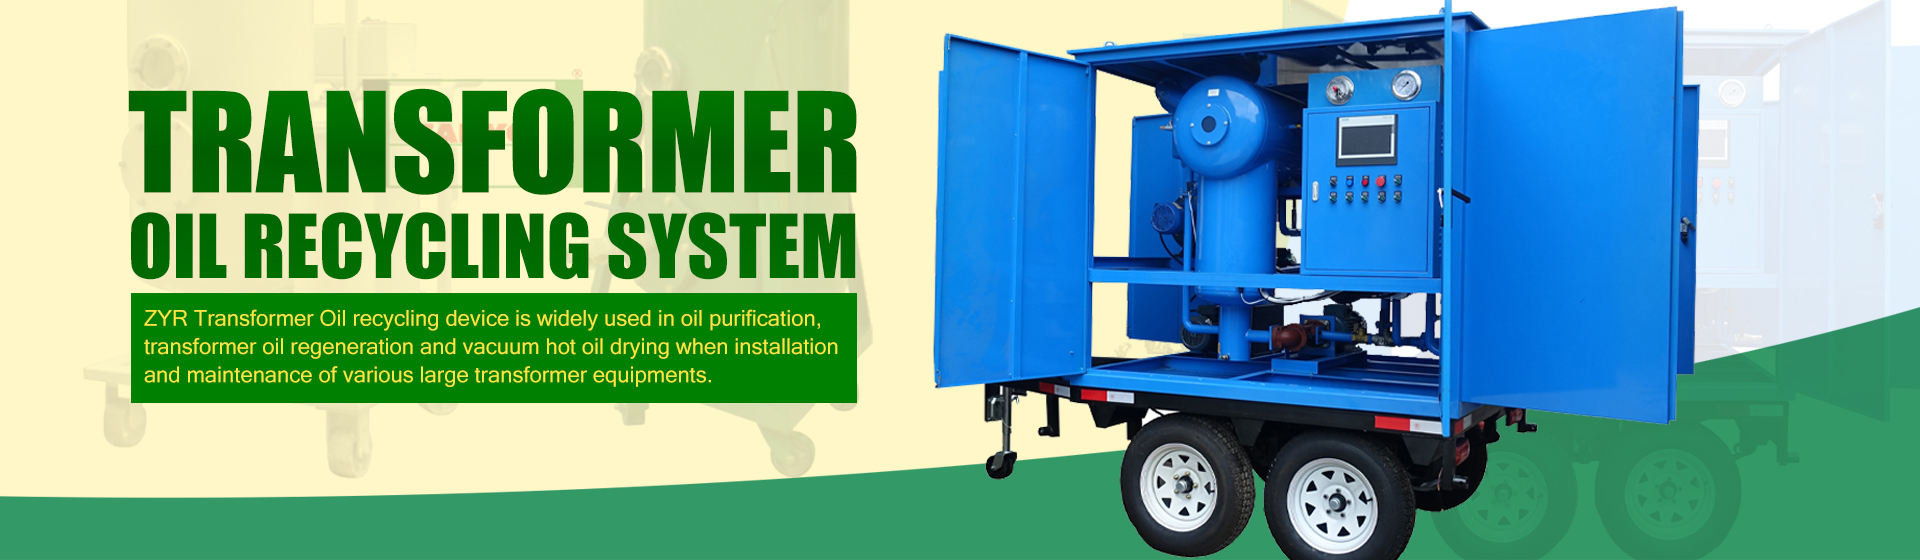 TRANSFORMERE OIL RECYCLING SYSTEM BANNER 0301